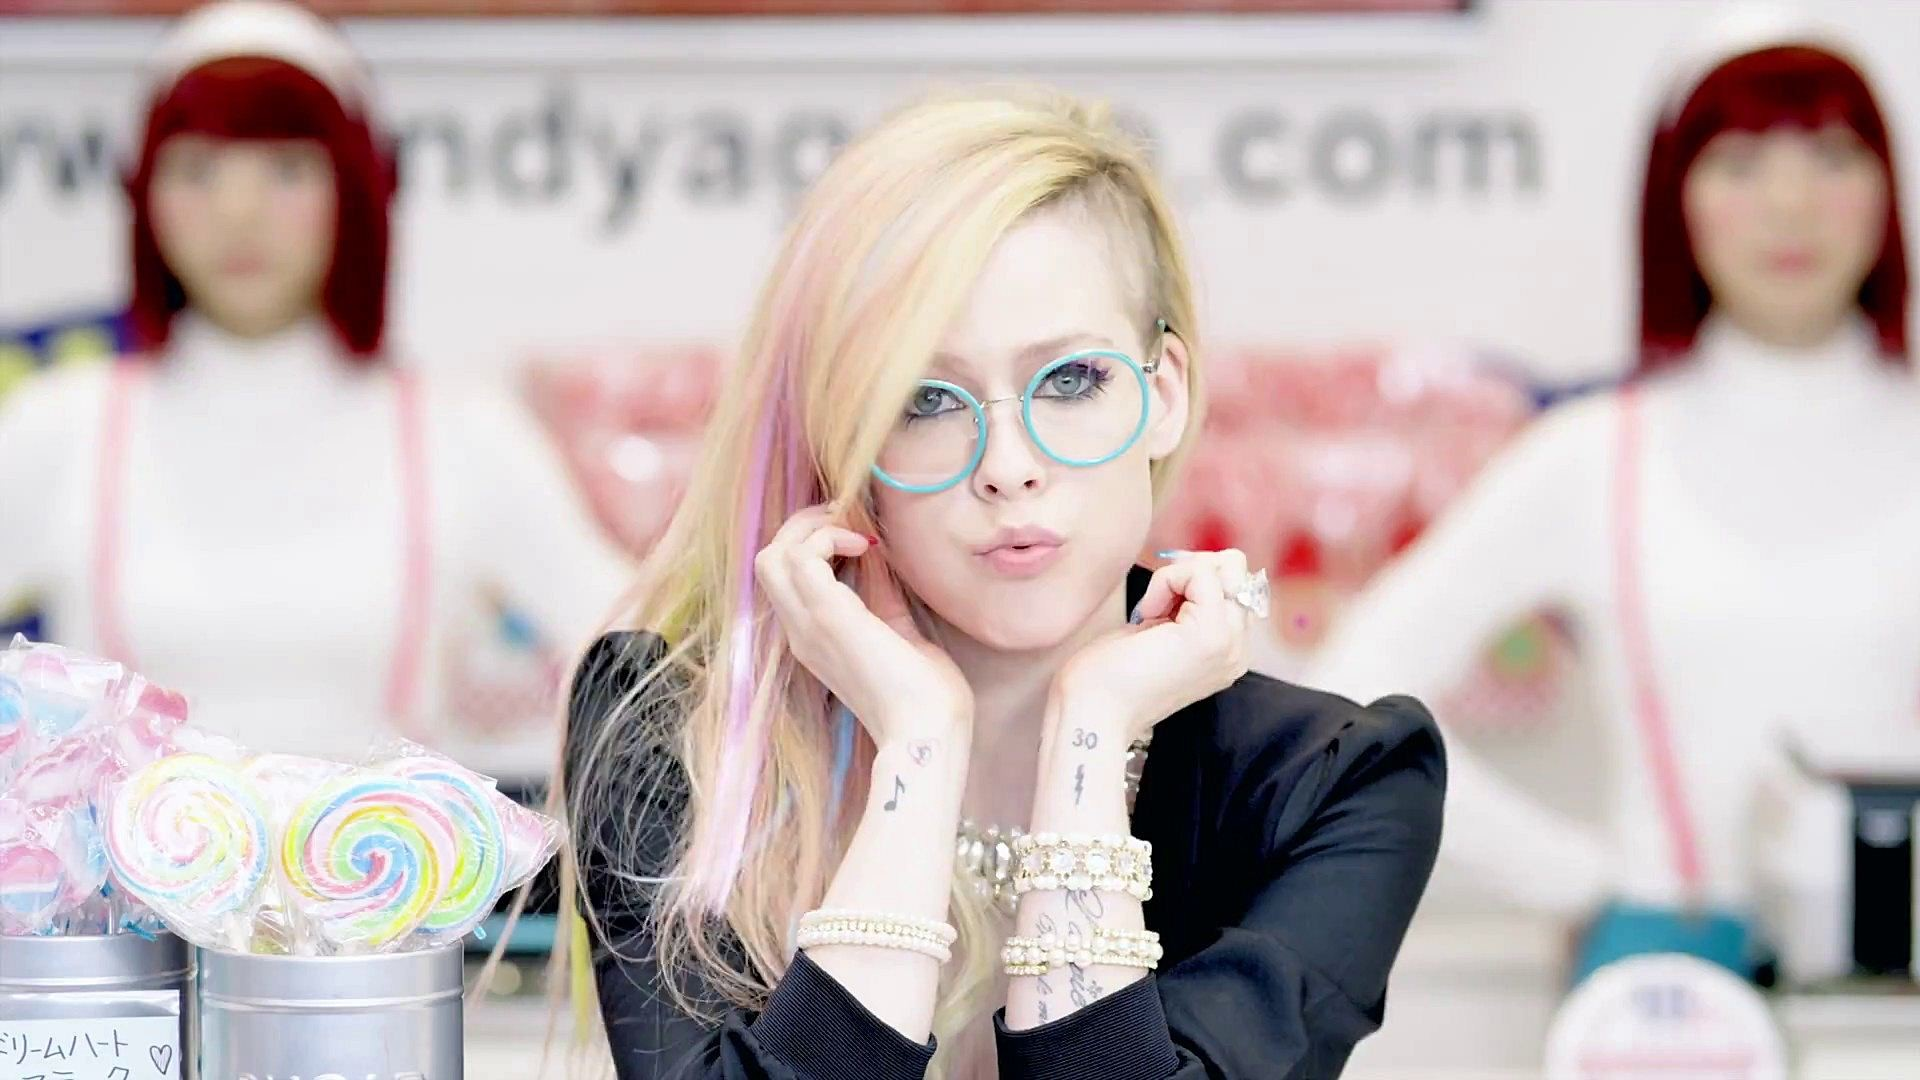 How To Make Live Wallpaper Iphone X Avril Lavigne Wallpapers 71 Images